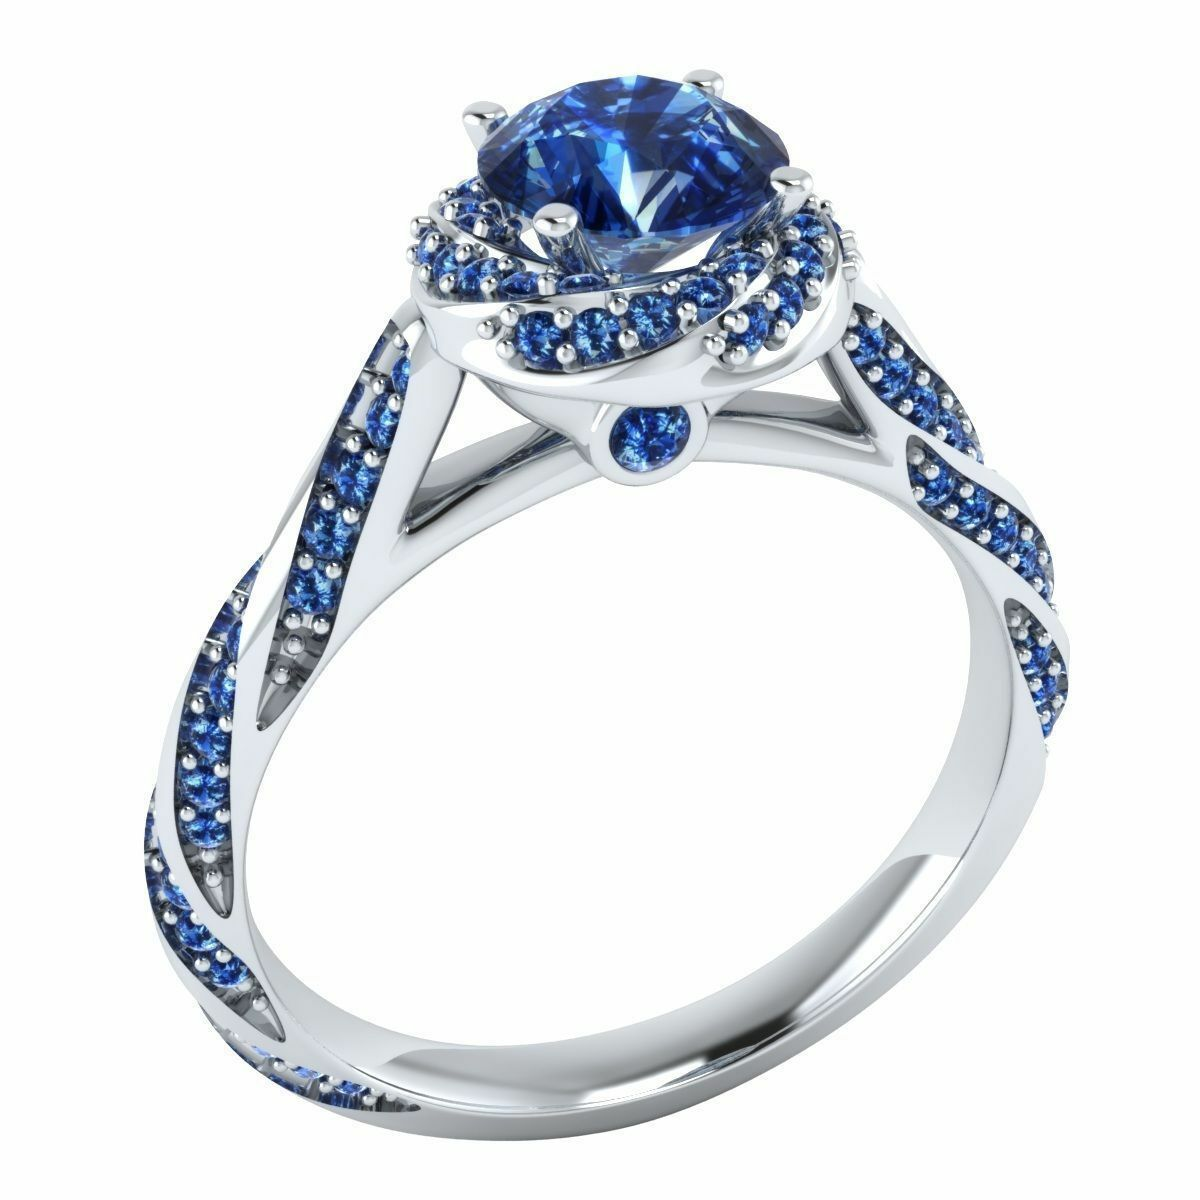 1.00 ct Round Cut bluee Sapphire Engagement Wedding Ring 14k Solid White gold